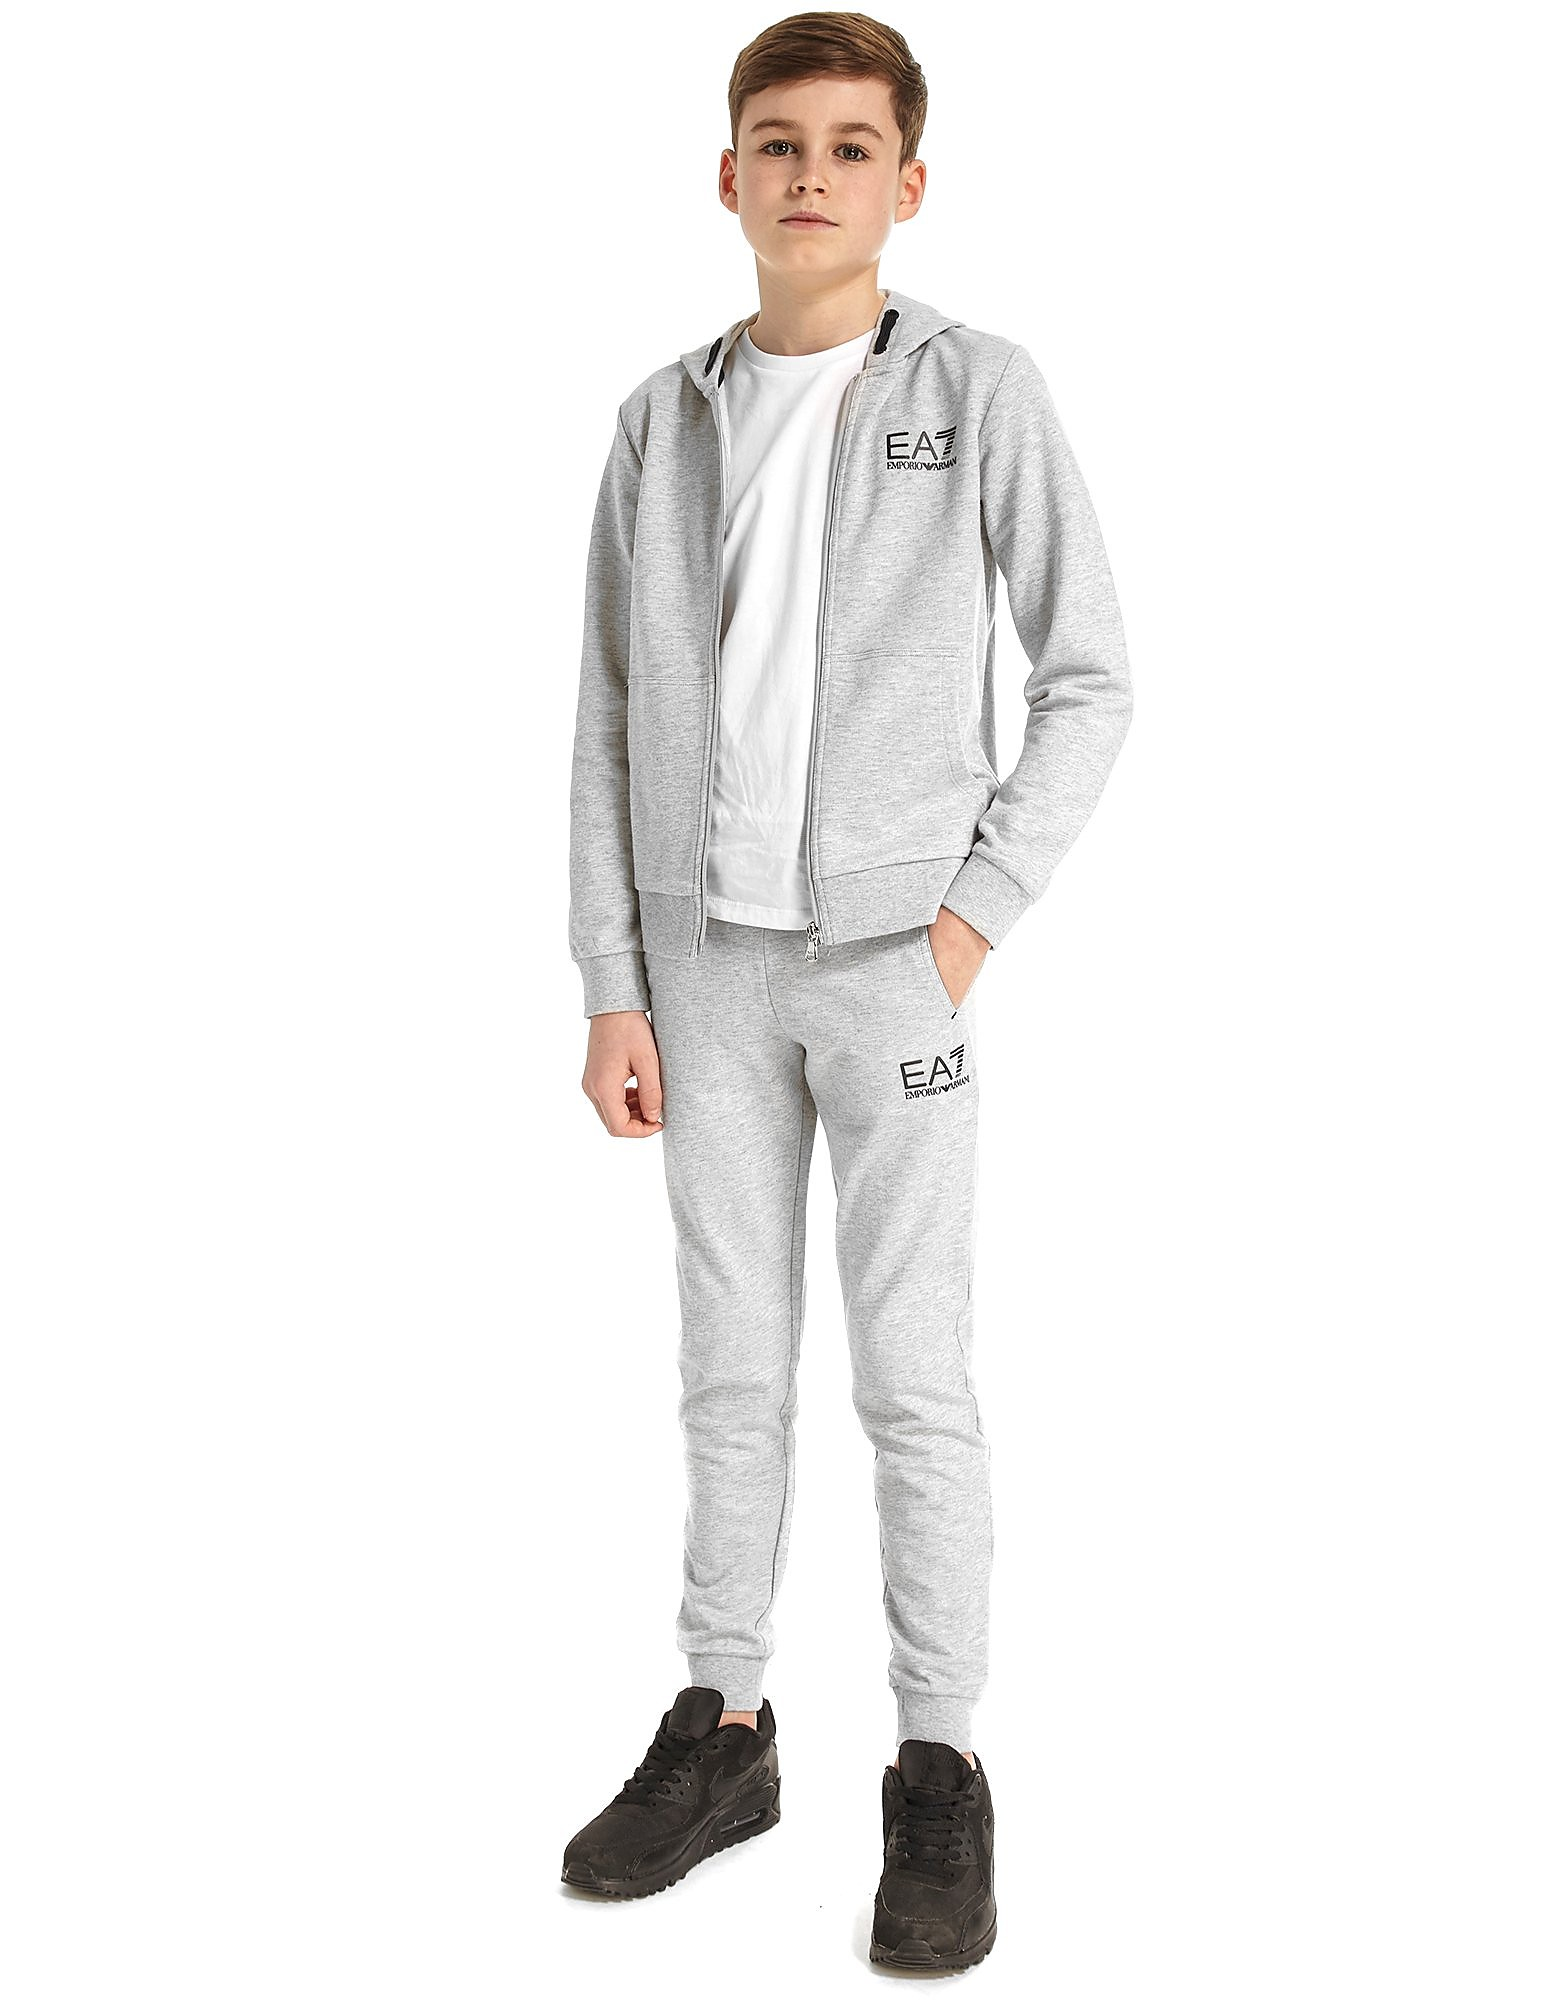 Emporio Armani EA7 Core Full Zip Suit Junior